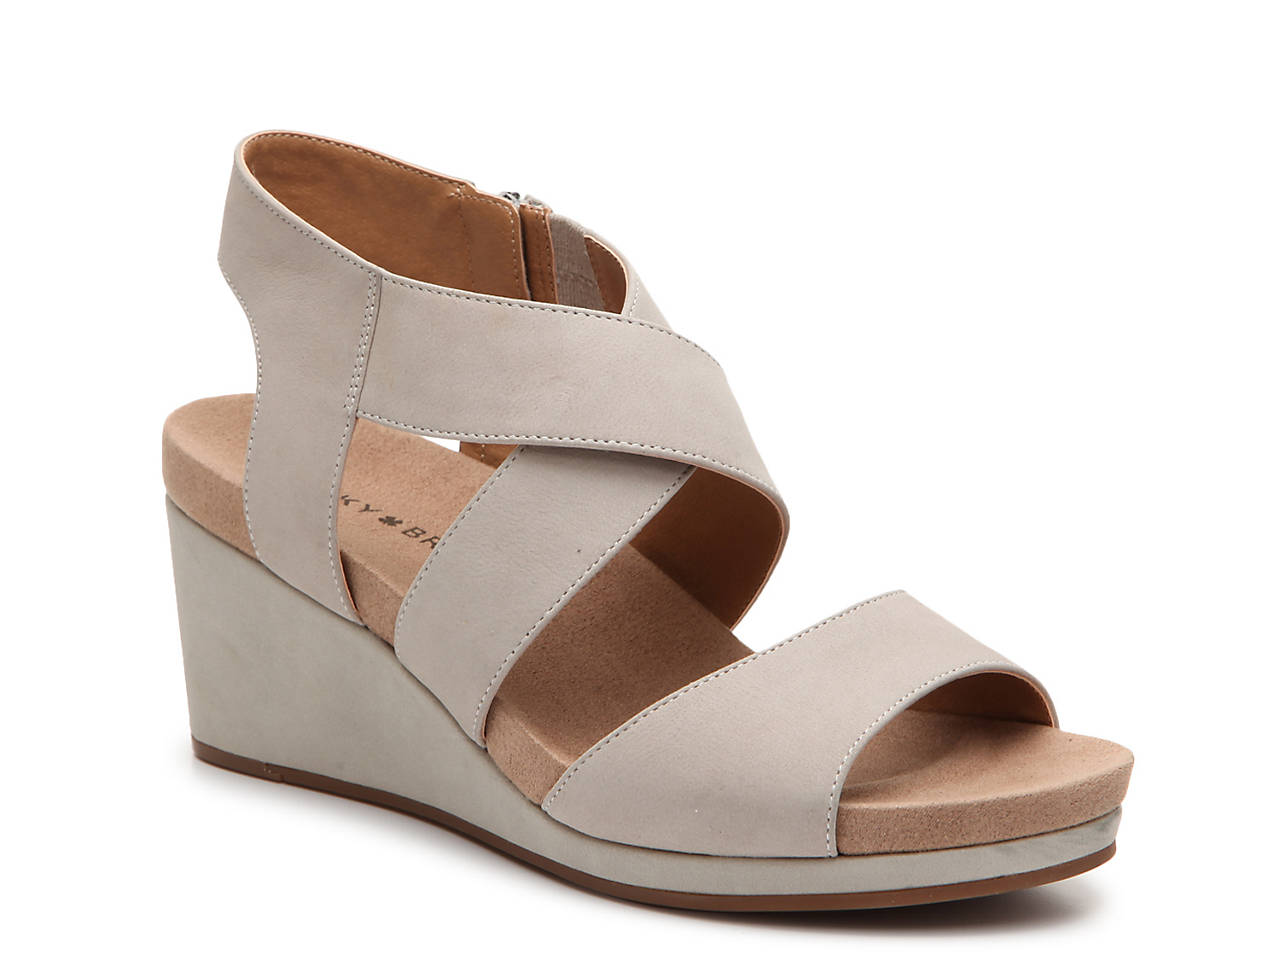 a959a4fb3a Lucky Brand Kakina Wedge Sandal Women's Shoes | DSW